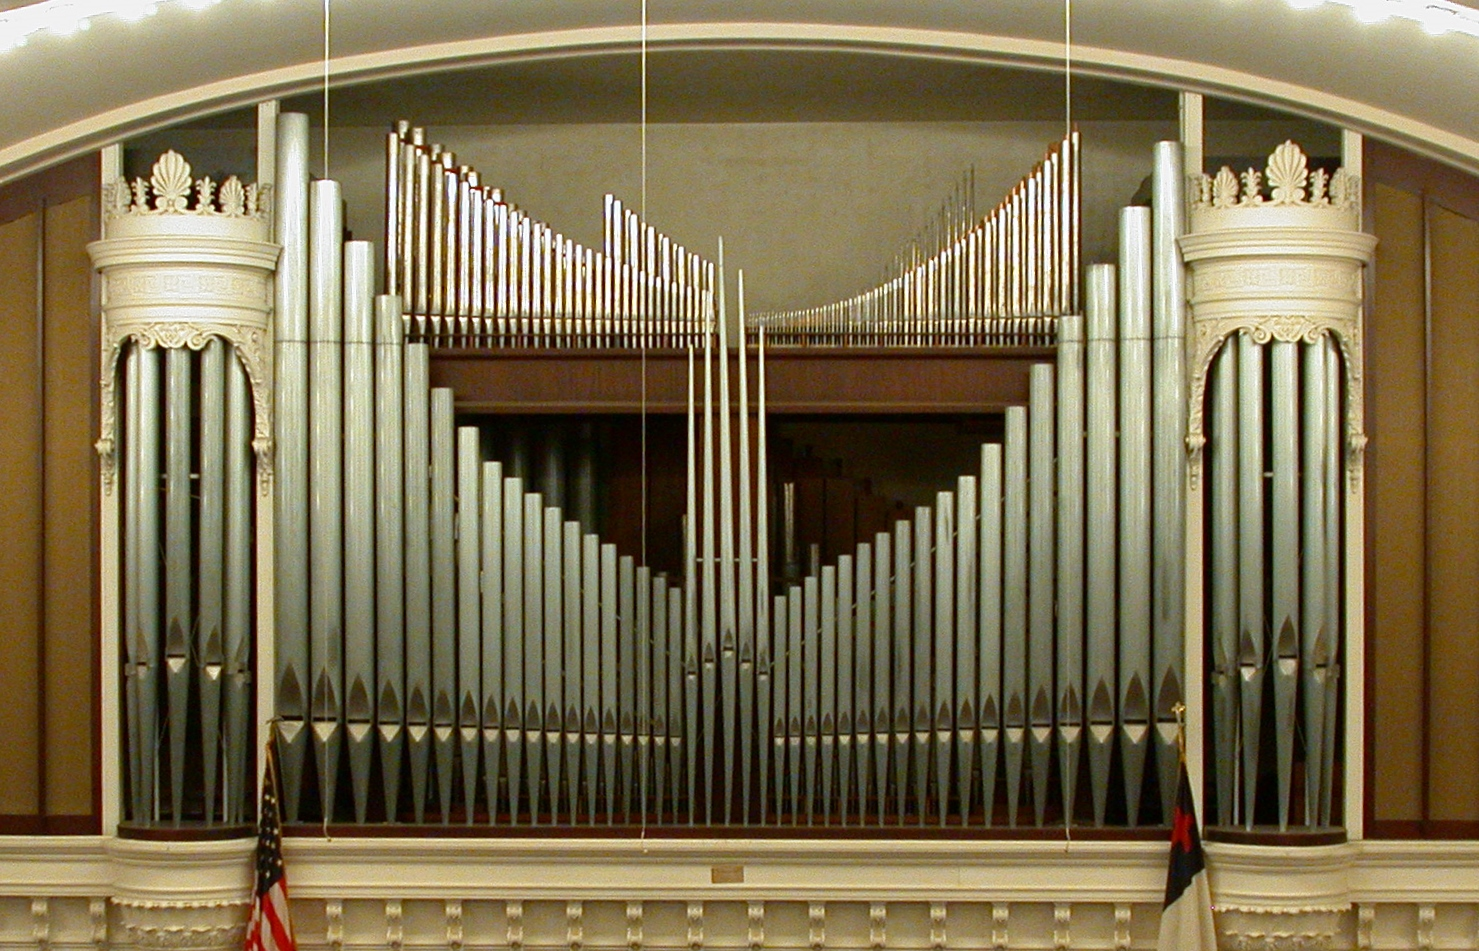 The sanctuary includes this Casavant Pipe Organ. Installed in 1968, it contains 3,366 pipes and took three years to construct. Image obtained from the Independence Boulevard Christian Church.